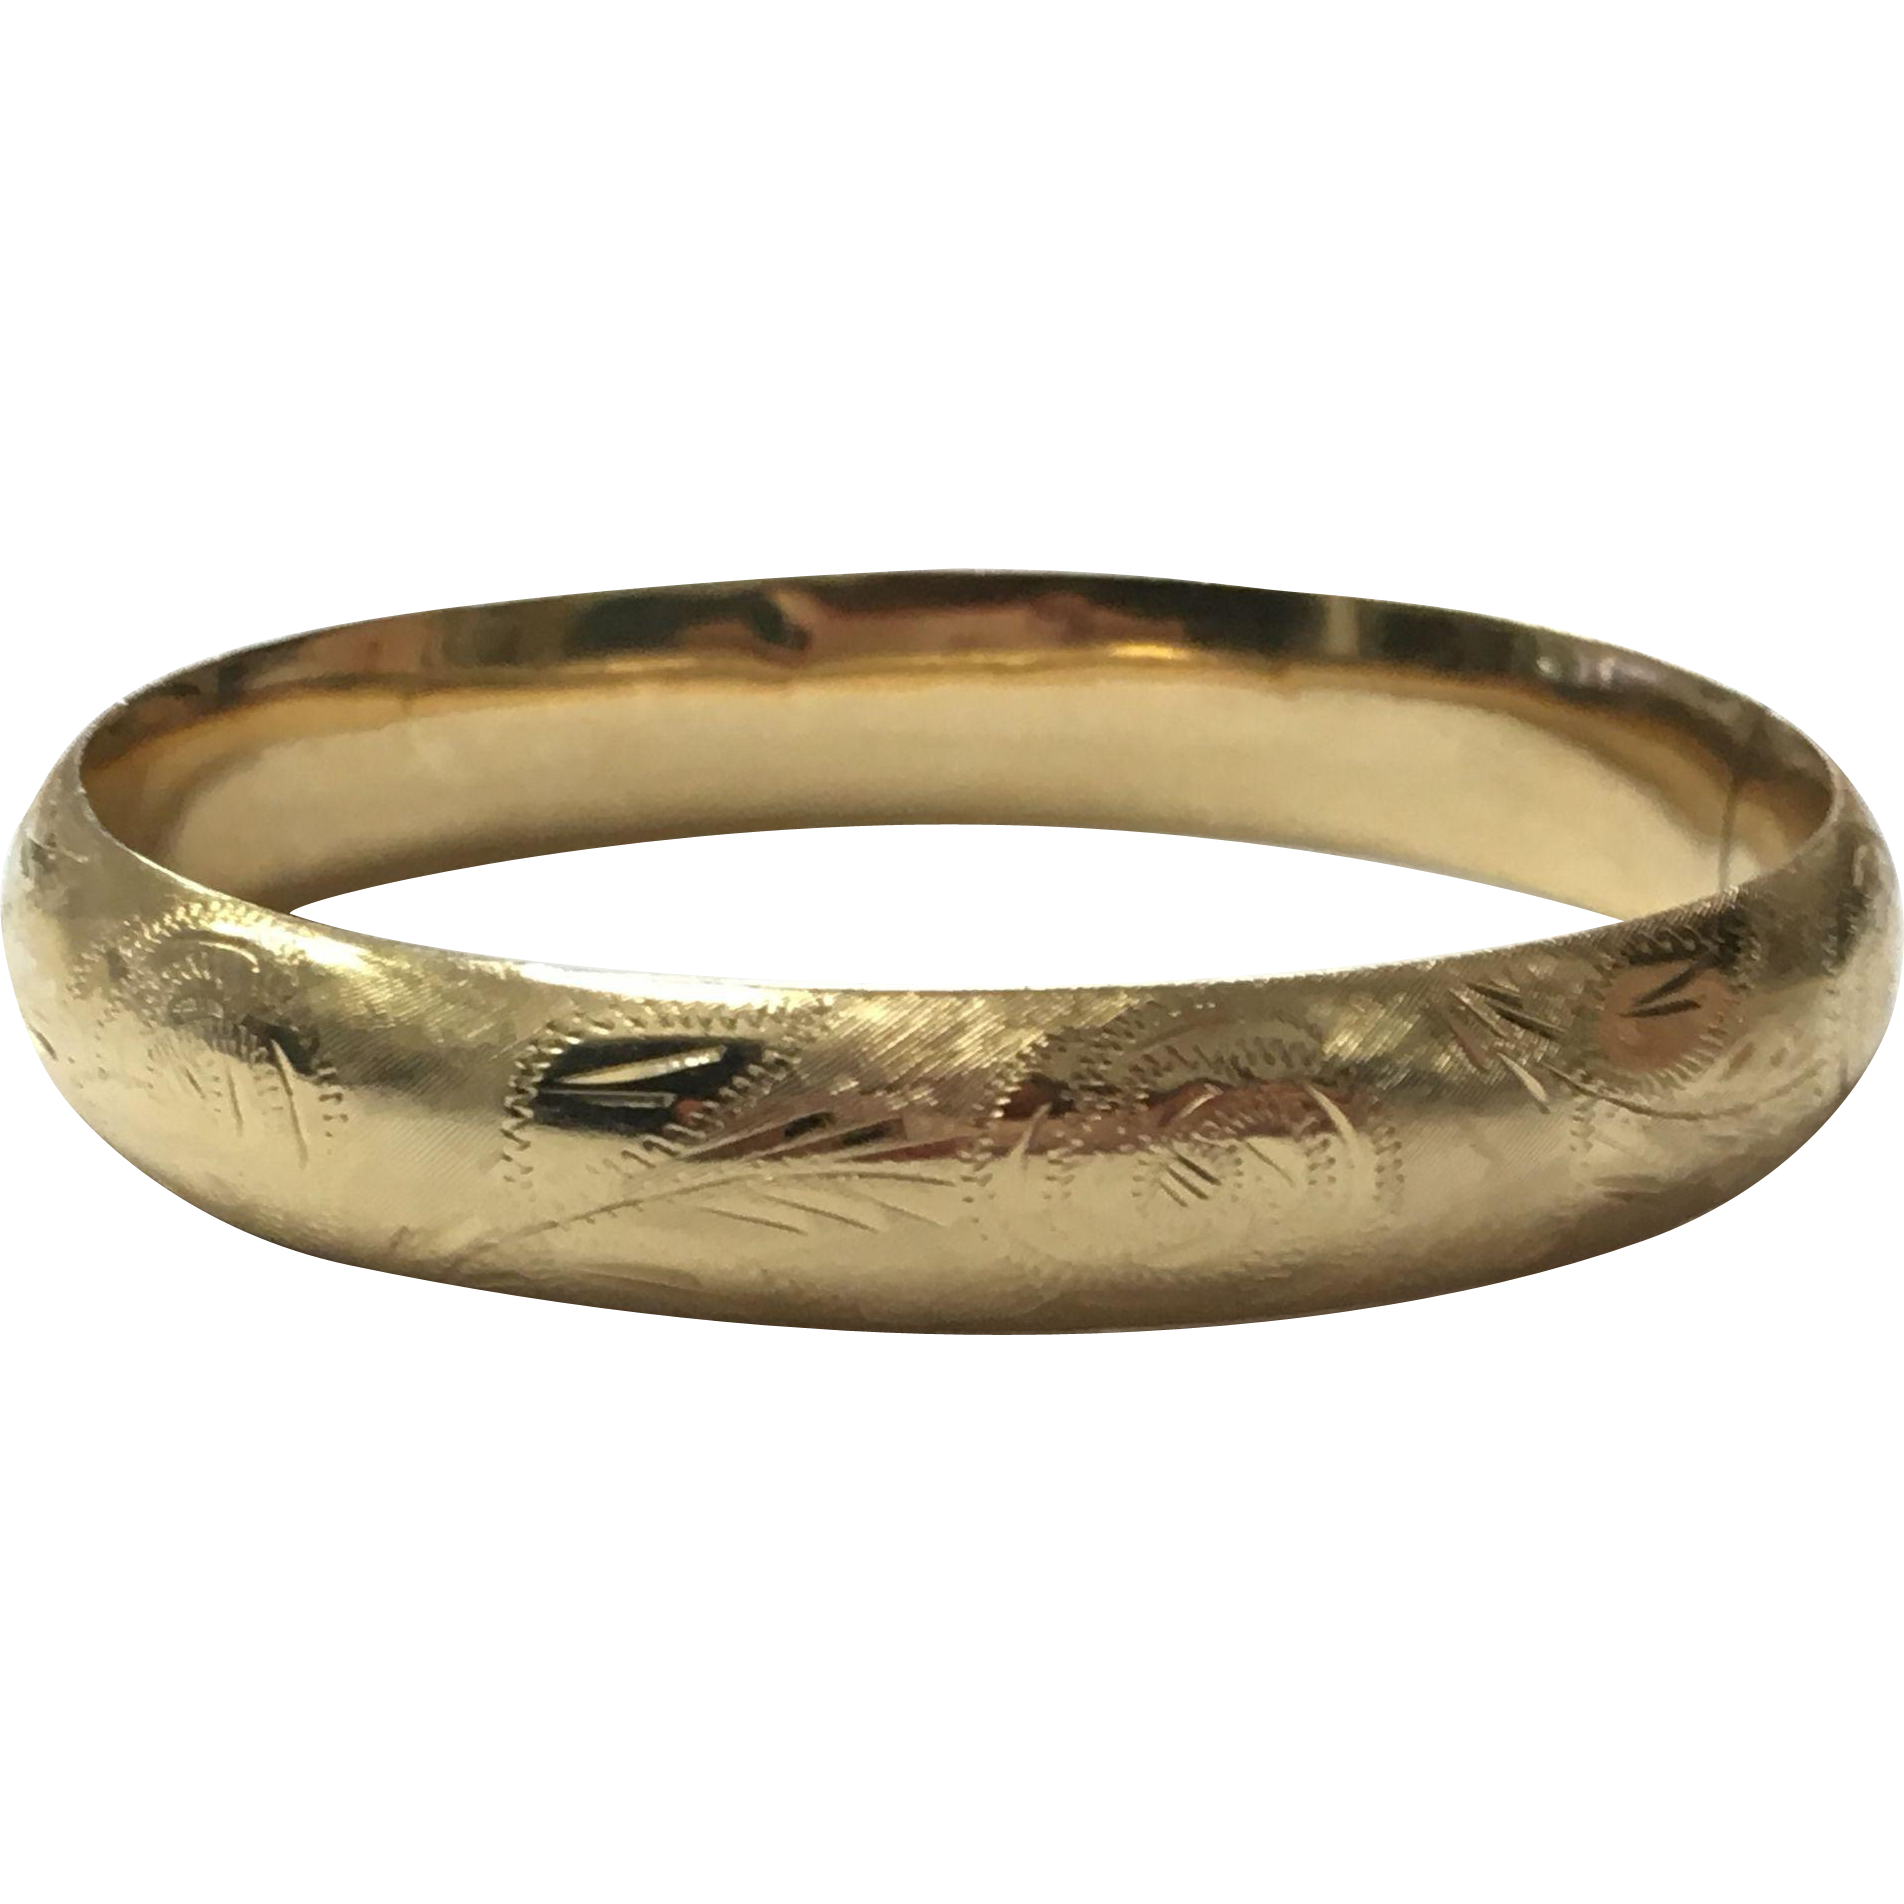 bangles bangle bracelet vintage flexible products gold etched hinged design